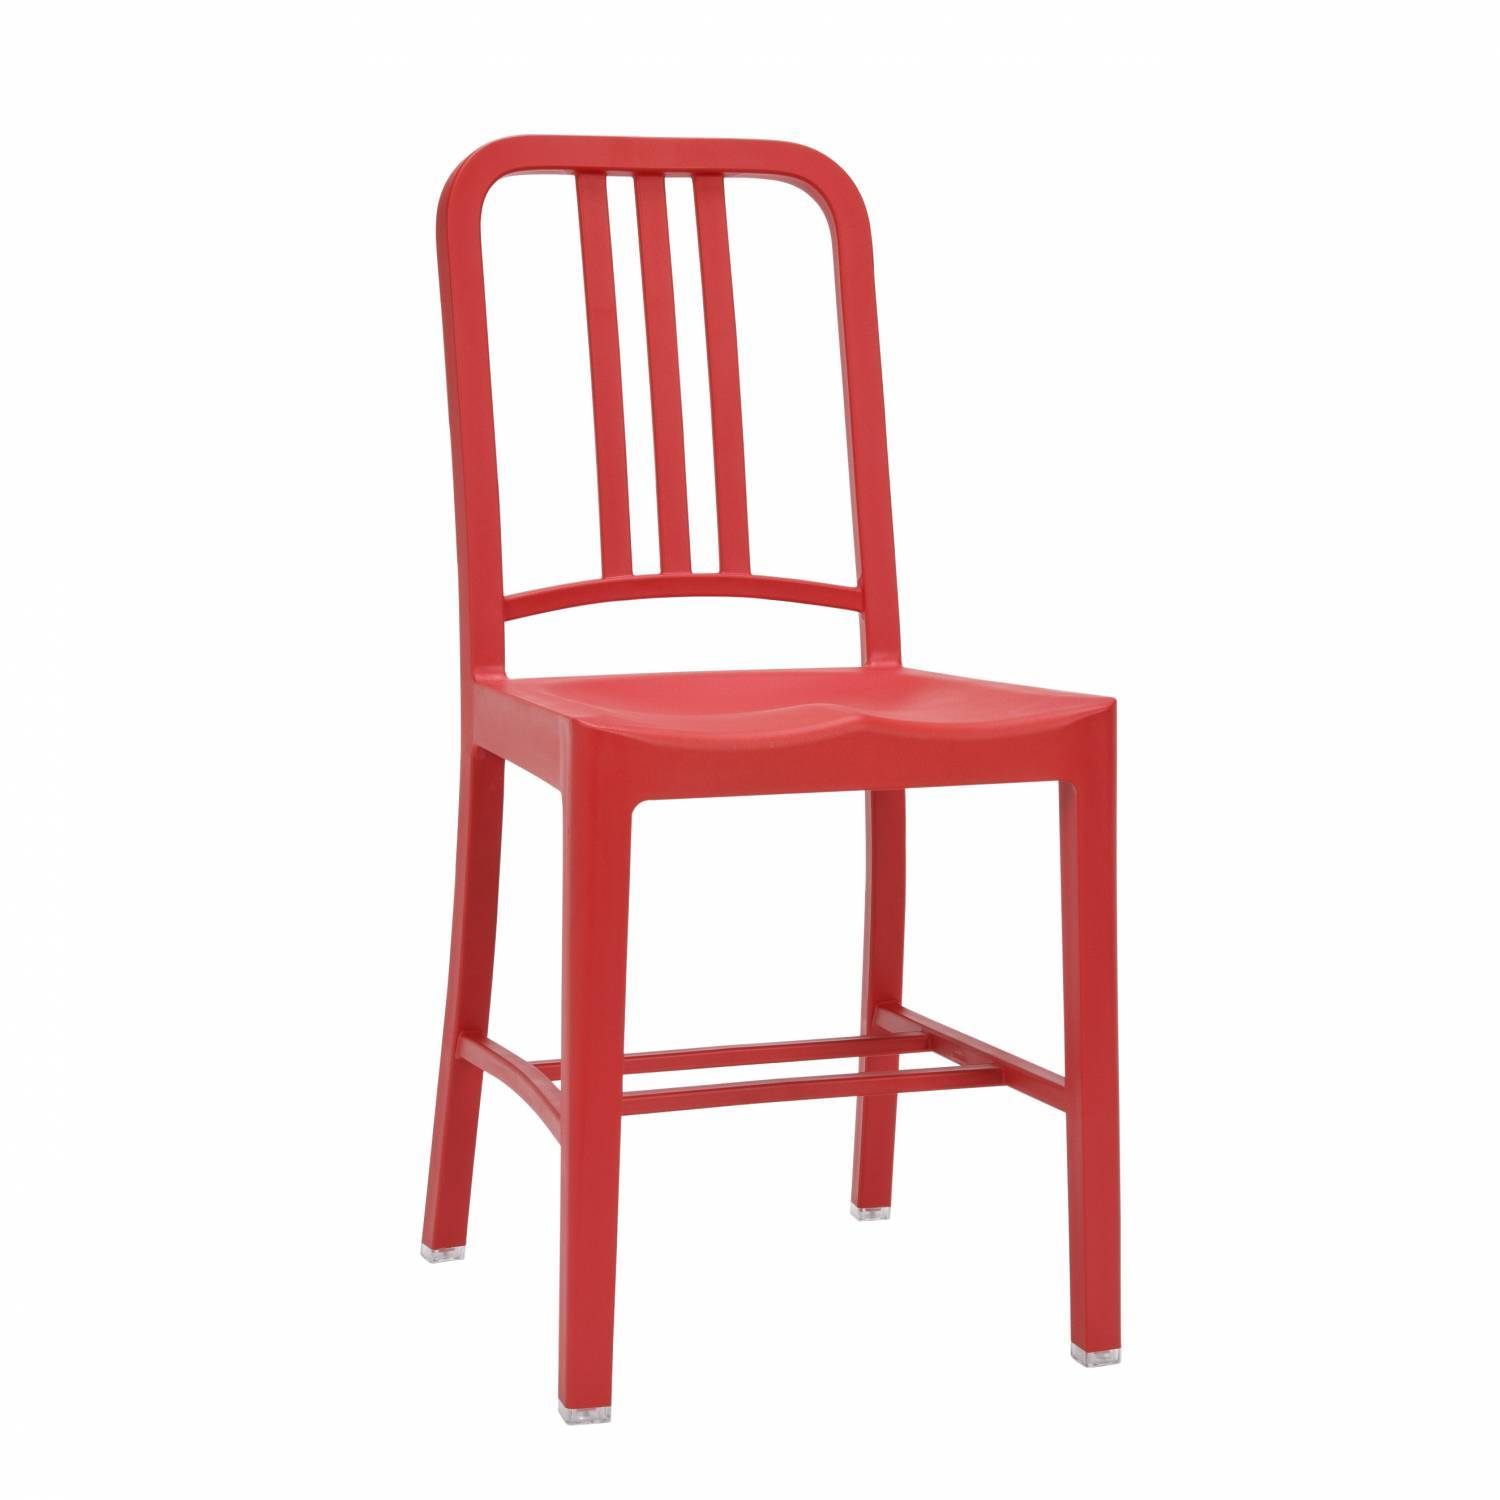 Emeco Style Navy Plastic Chair (Red) - Nathan Rhodes Design